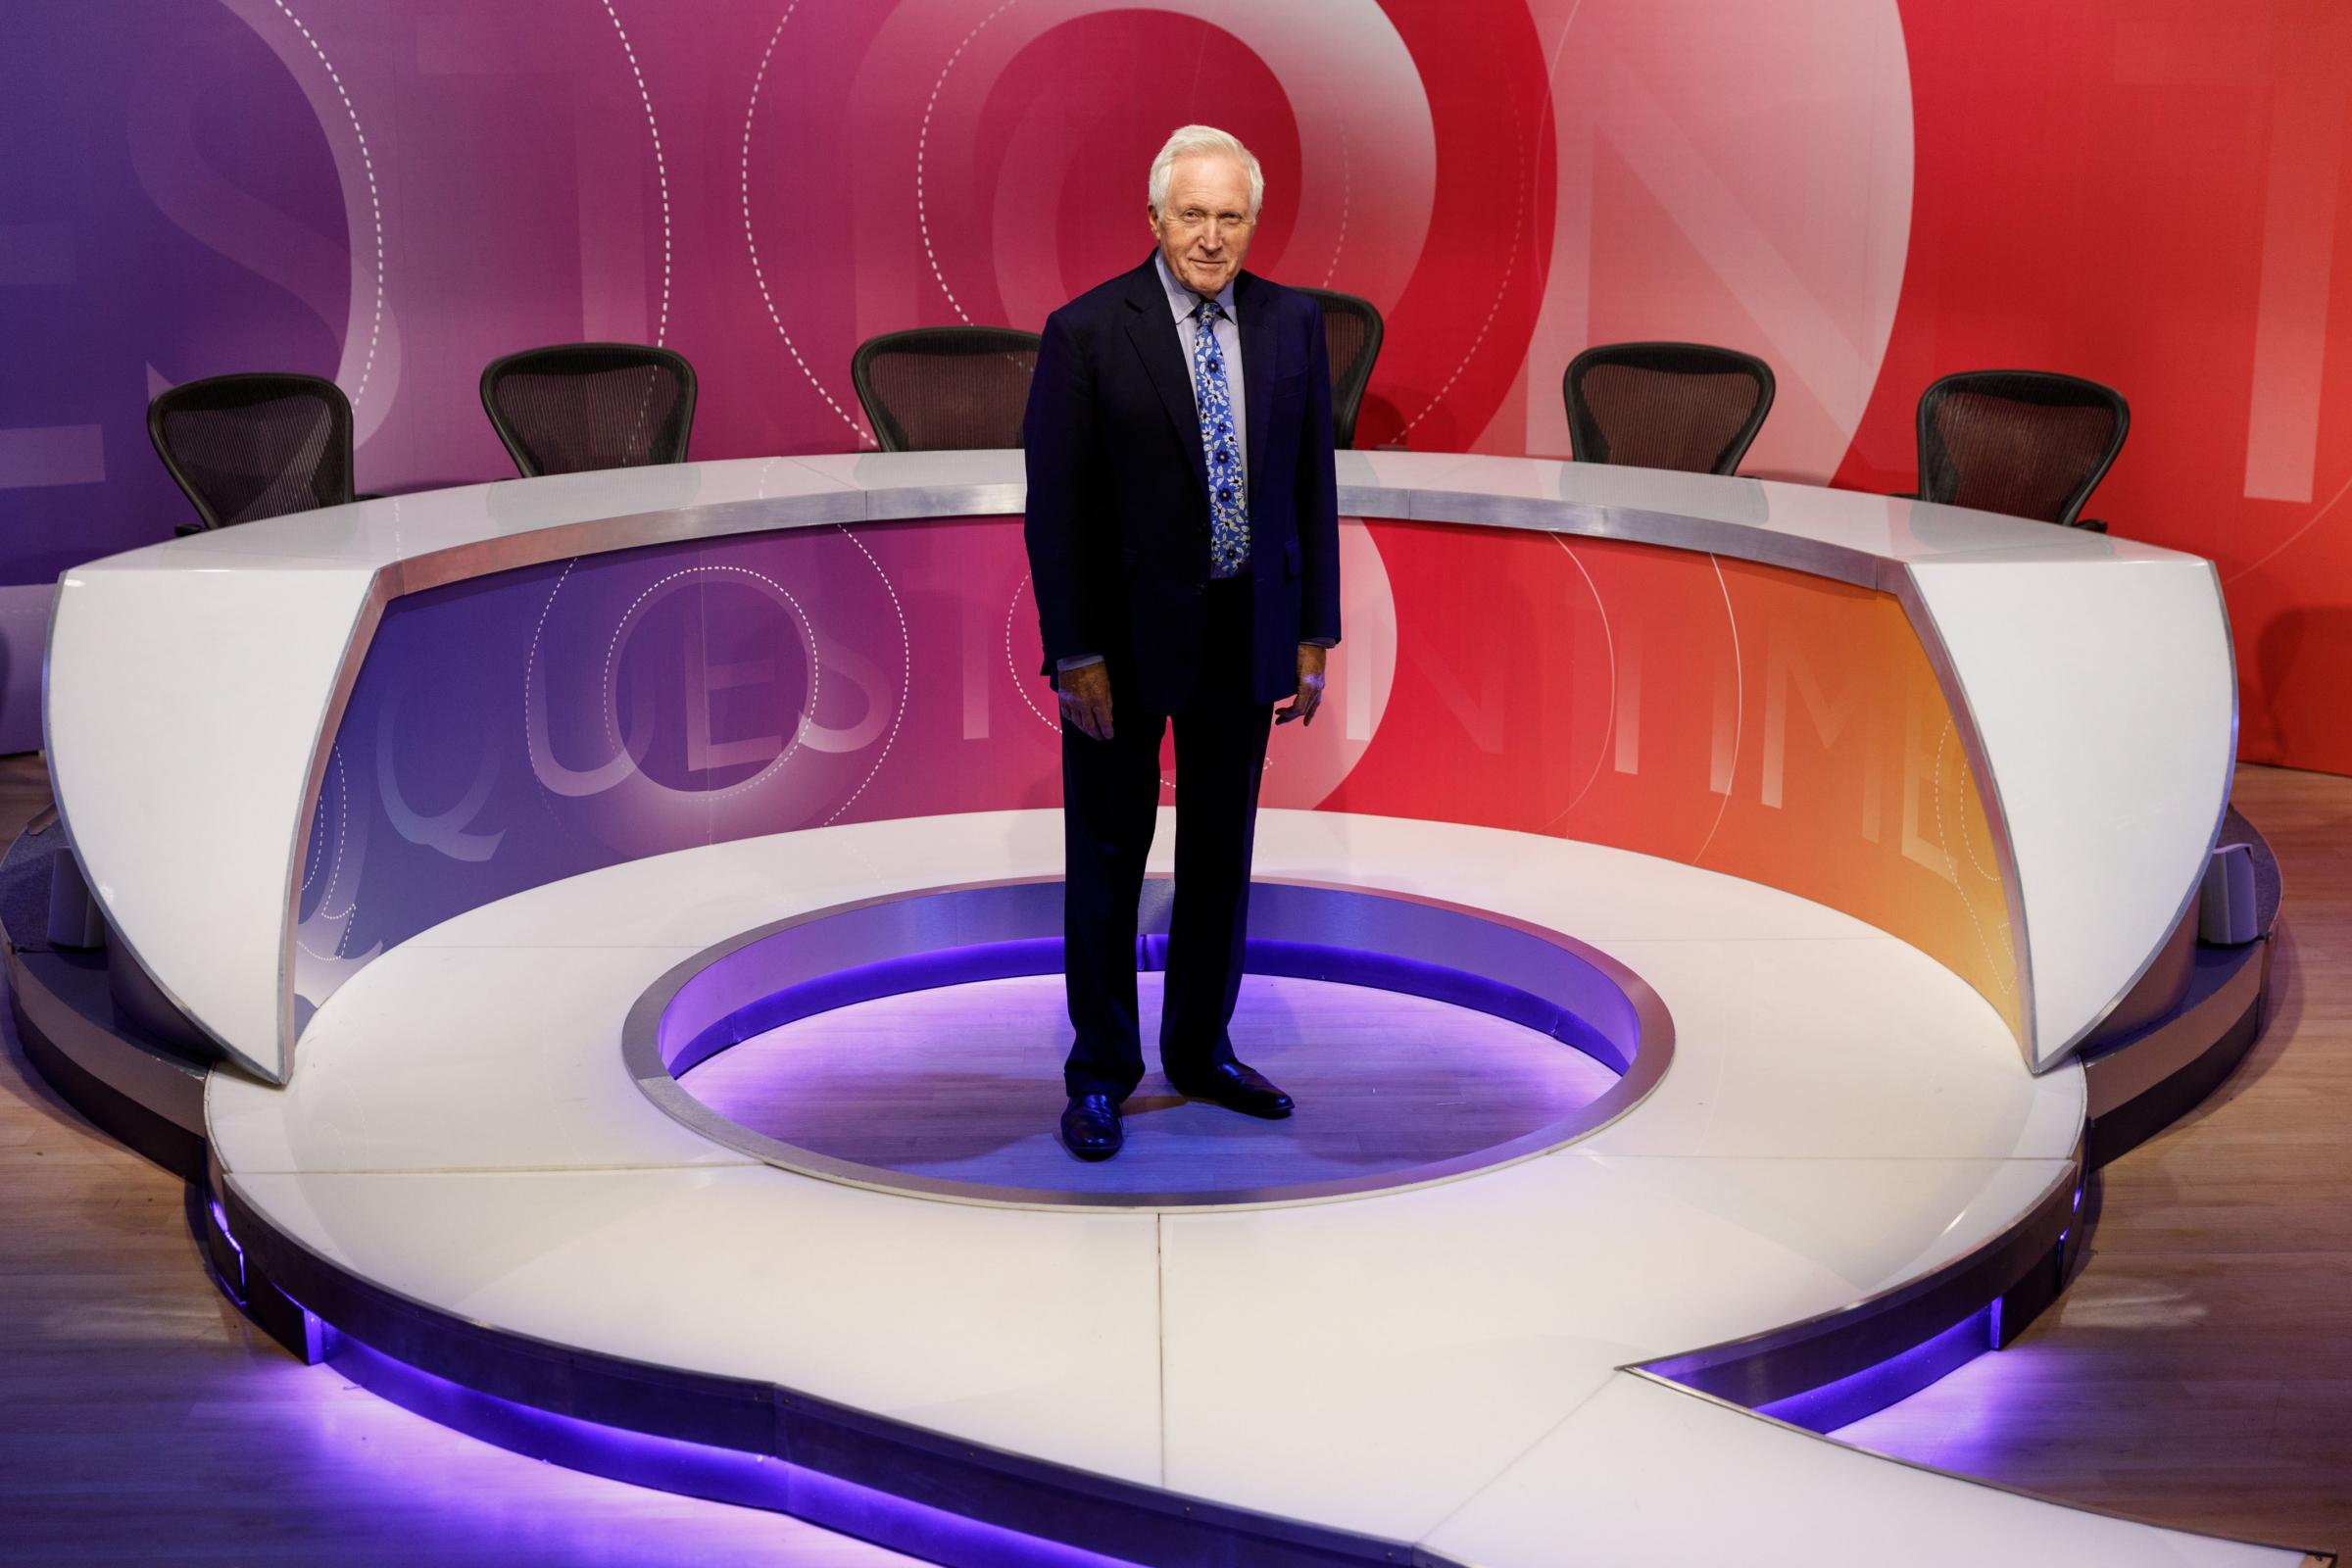 This will be David Dimbleby's final outing as BBC Question Time host